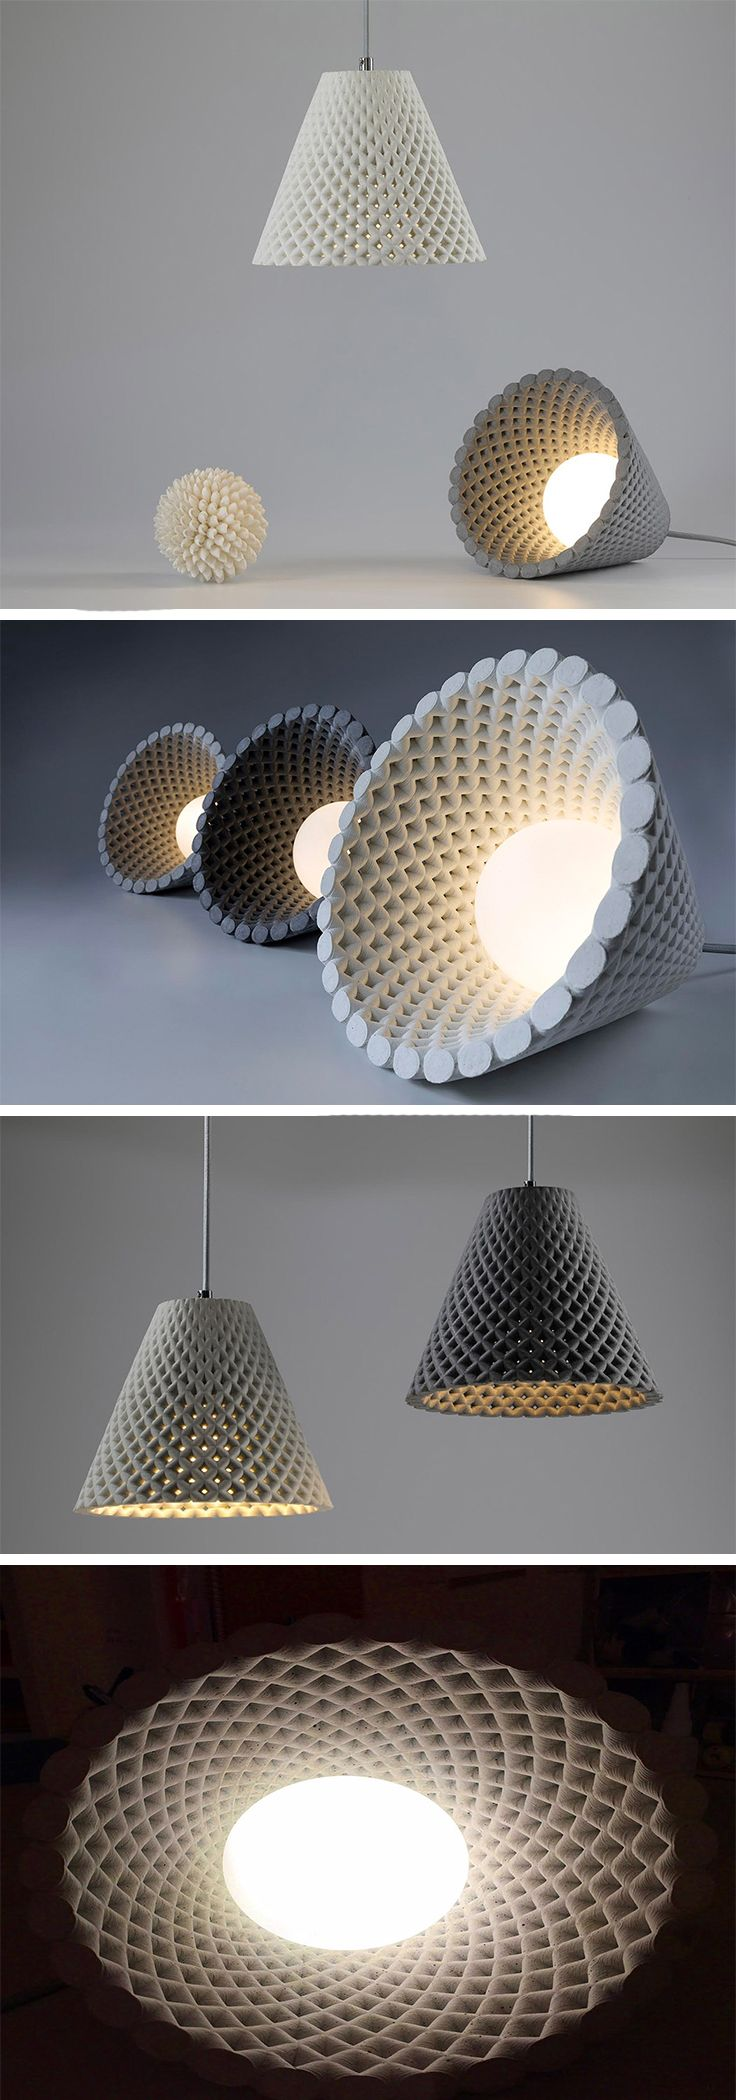 This design was inspired by the fascinating geometric pattern created by clustered sunflower seeds. The stretched version of a Fibonacci spiral, its perfectly perforated, sculptural structure creates a stunning visual whether or not the light is activated. When the light is switched on, however, it creates a breathtaking silhouette of light and shadows cast on surrounding walls.